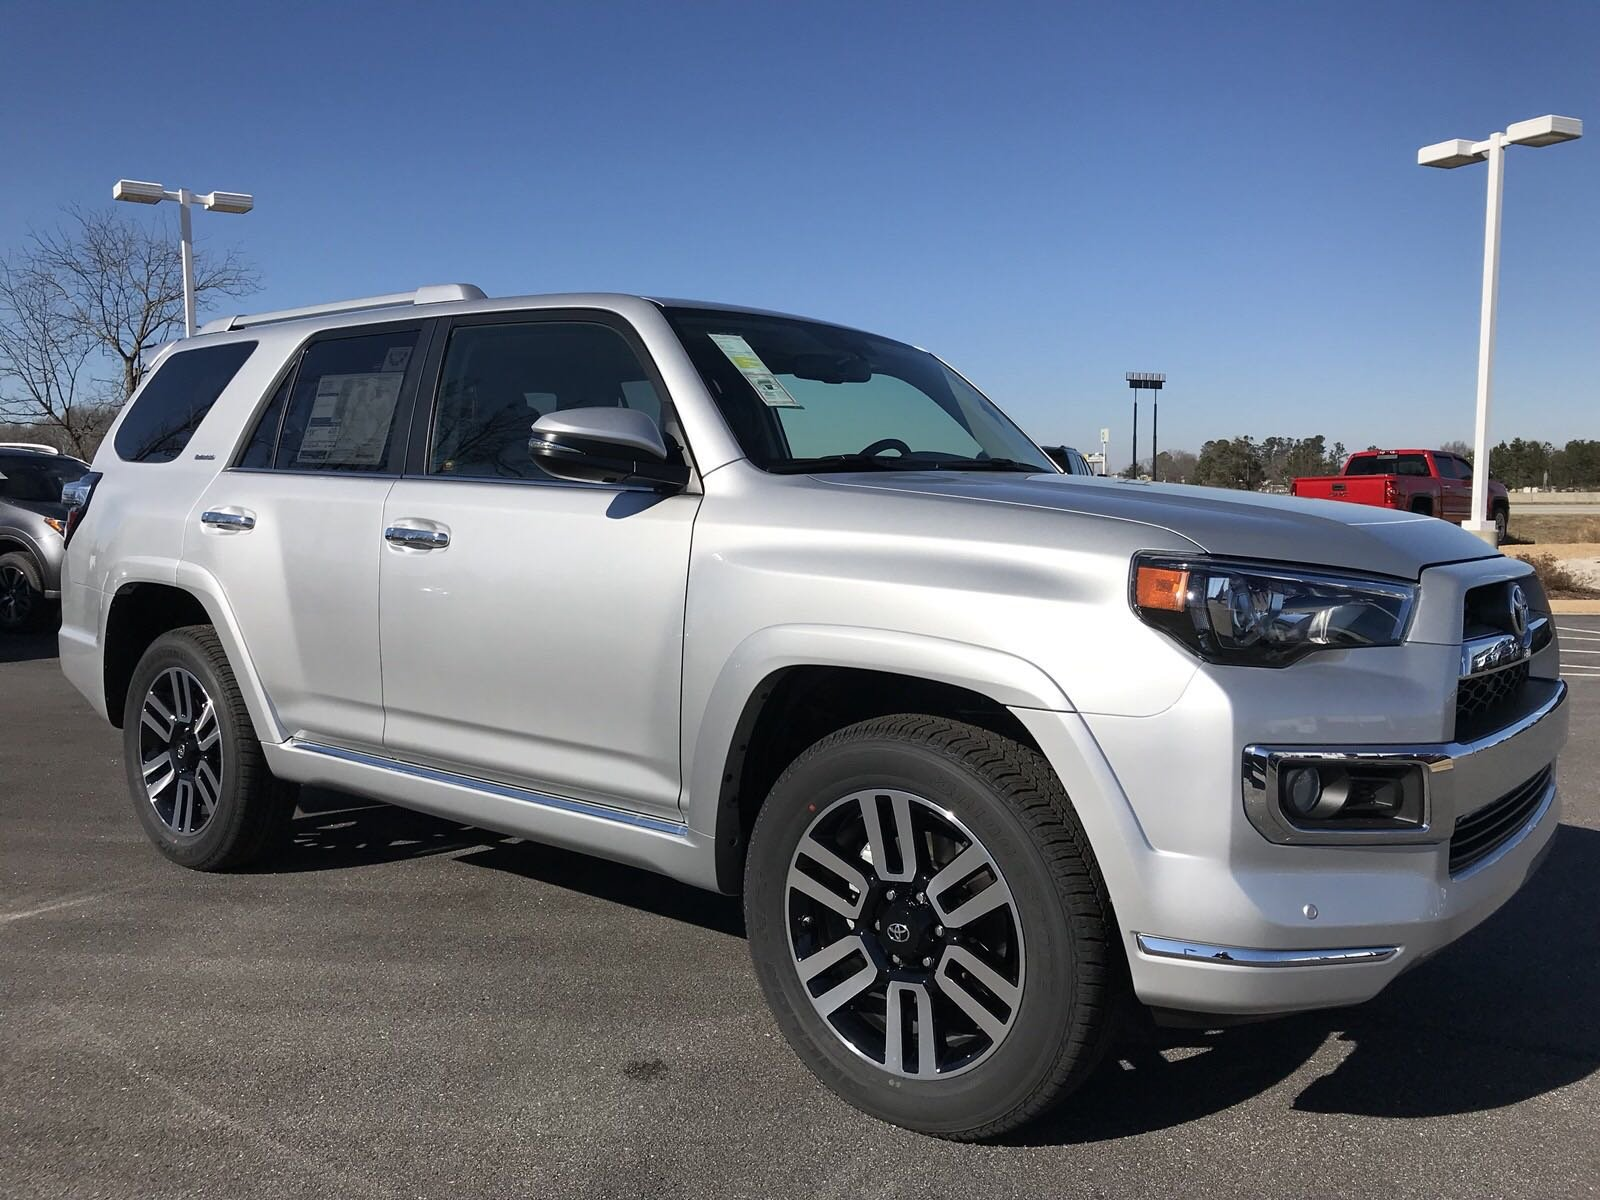 81ccd1b3a43151fa801e47f9d1333026 Great Description About Used toyota 4runner for Sale